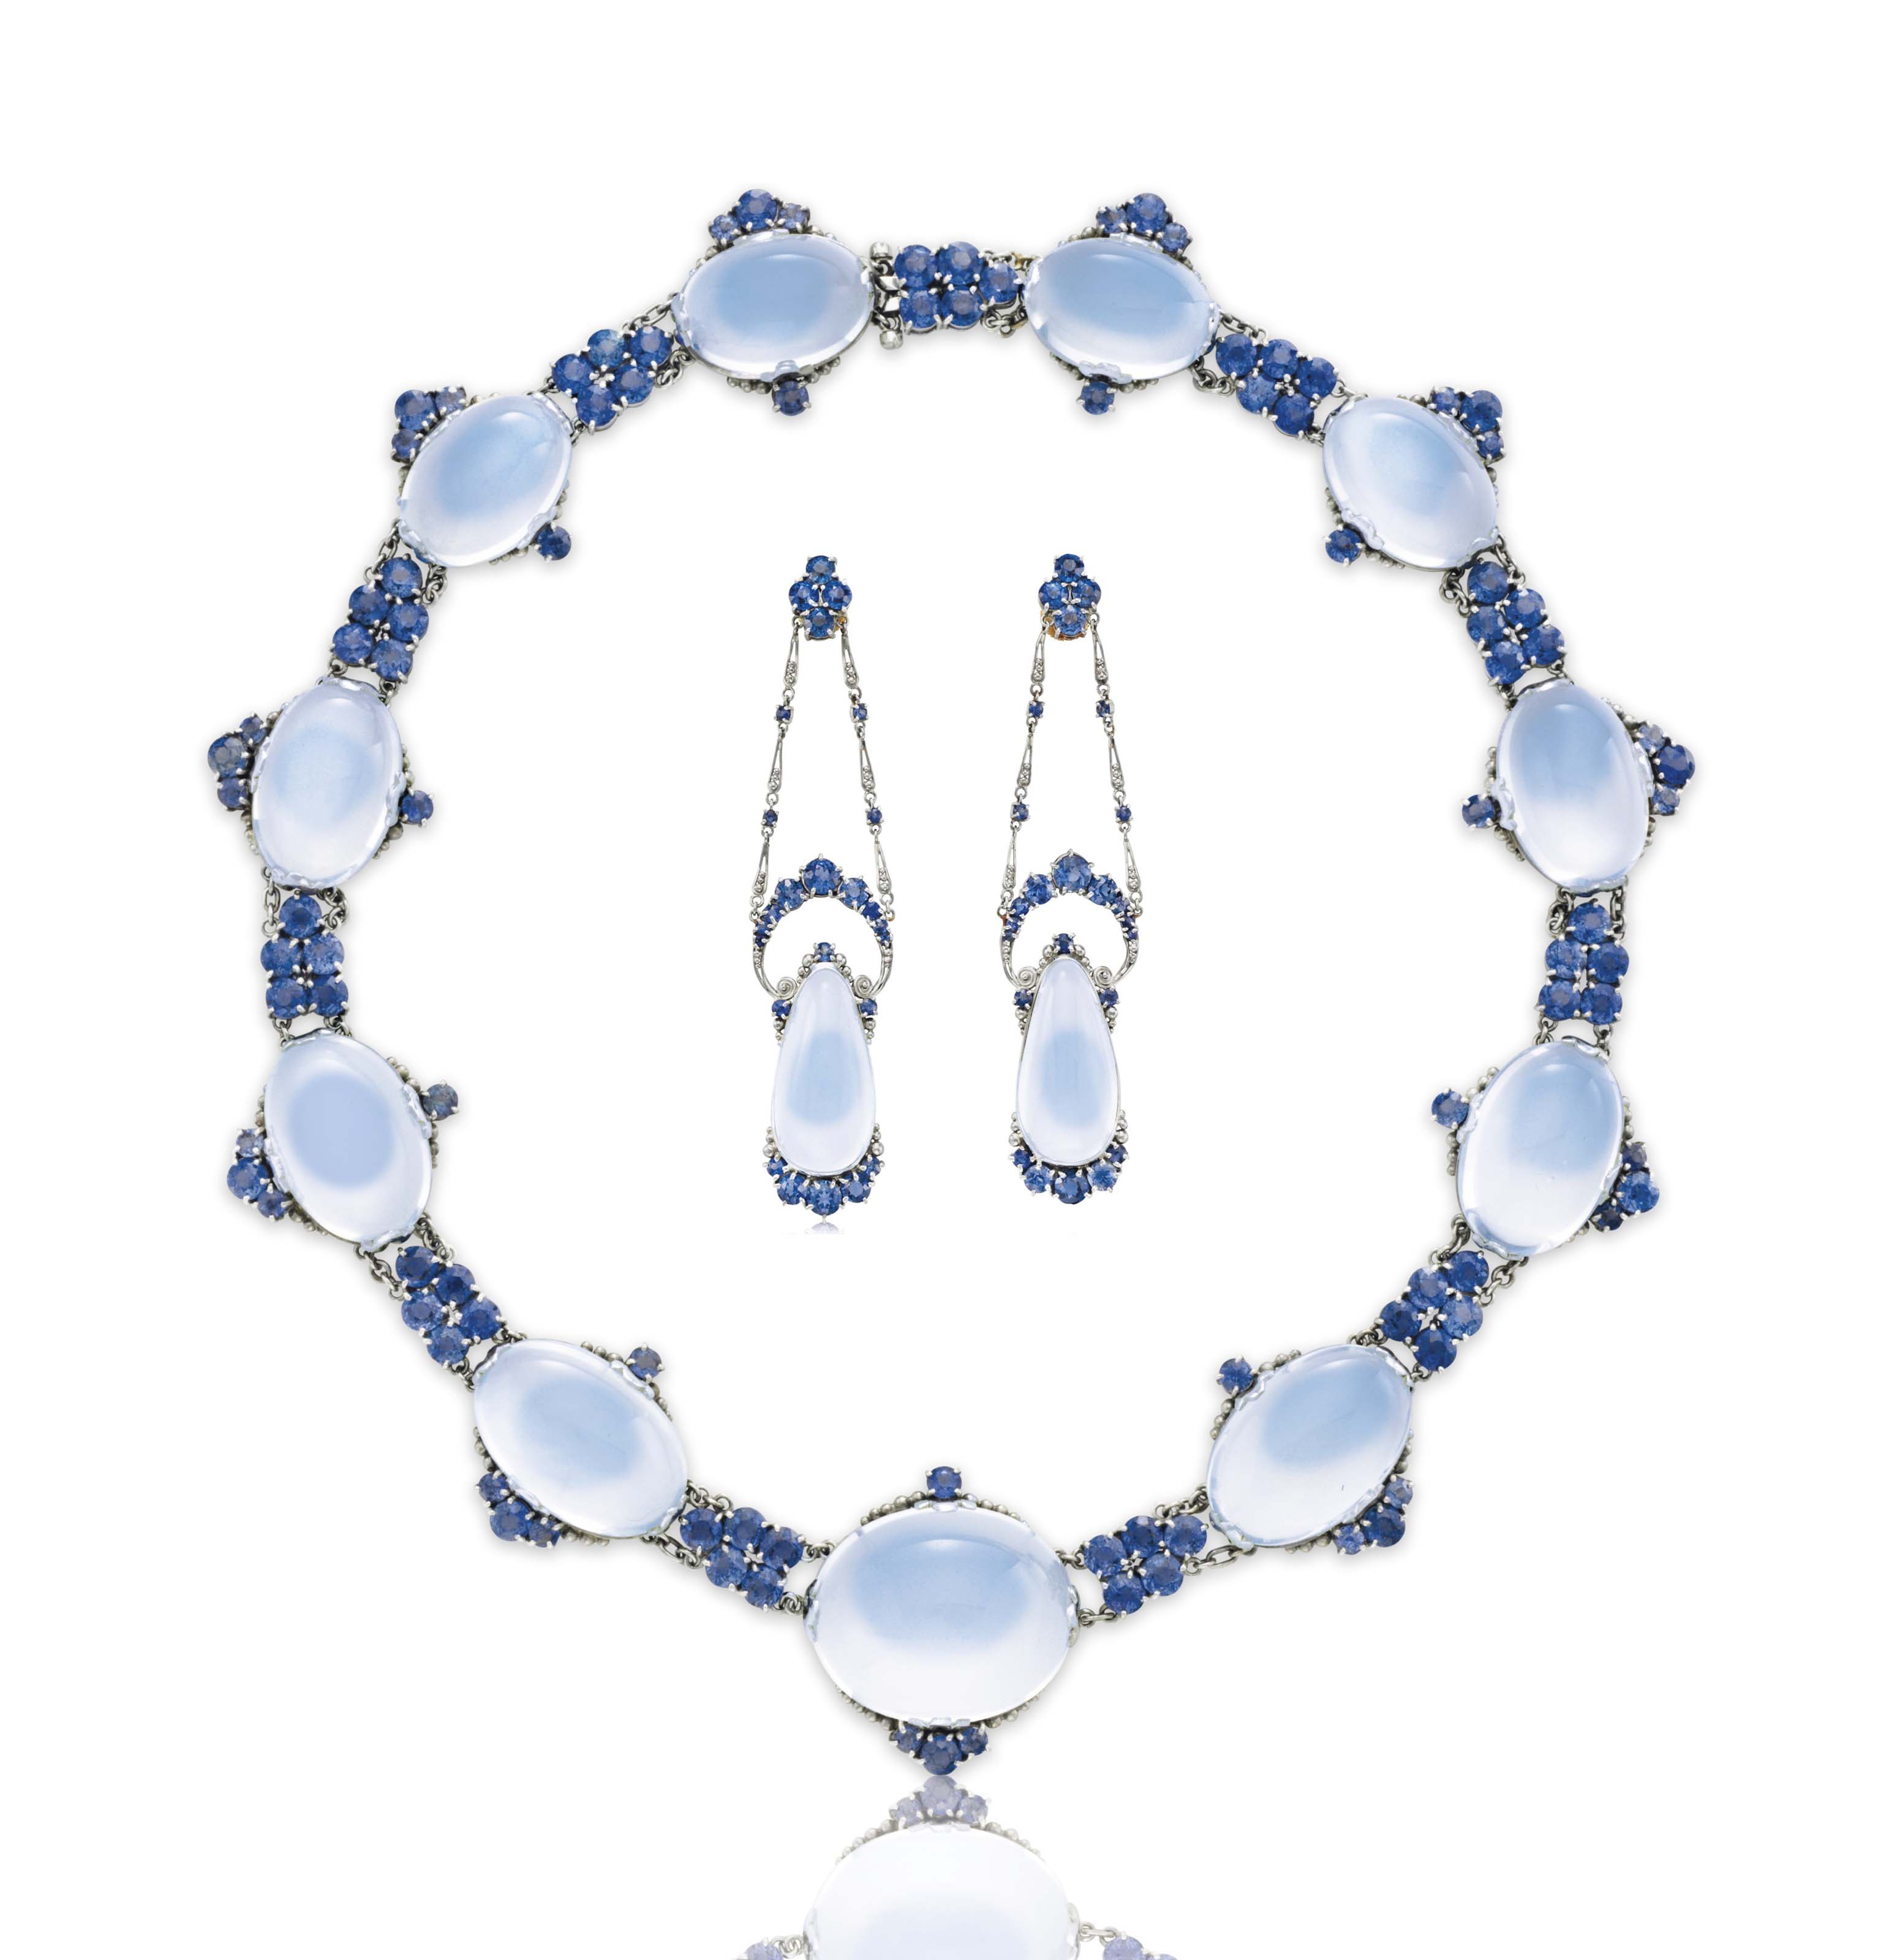 AN IMPRESSIVE SET OF MOONSTONE AND SAPPHIRE JEWELRY, BY LOUIS COMFORT TIFFANY, TIFFANY & CO.